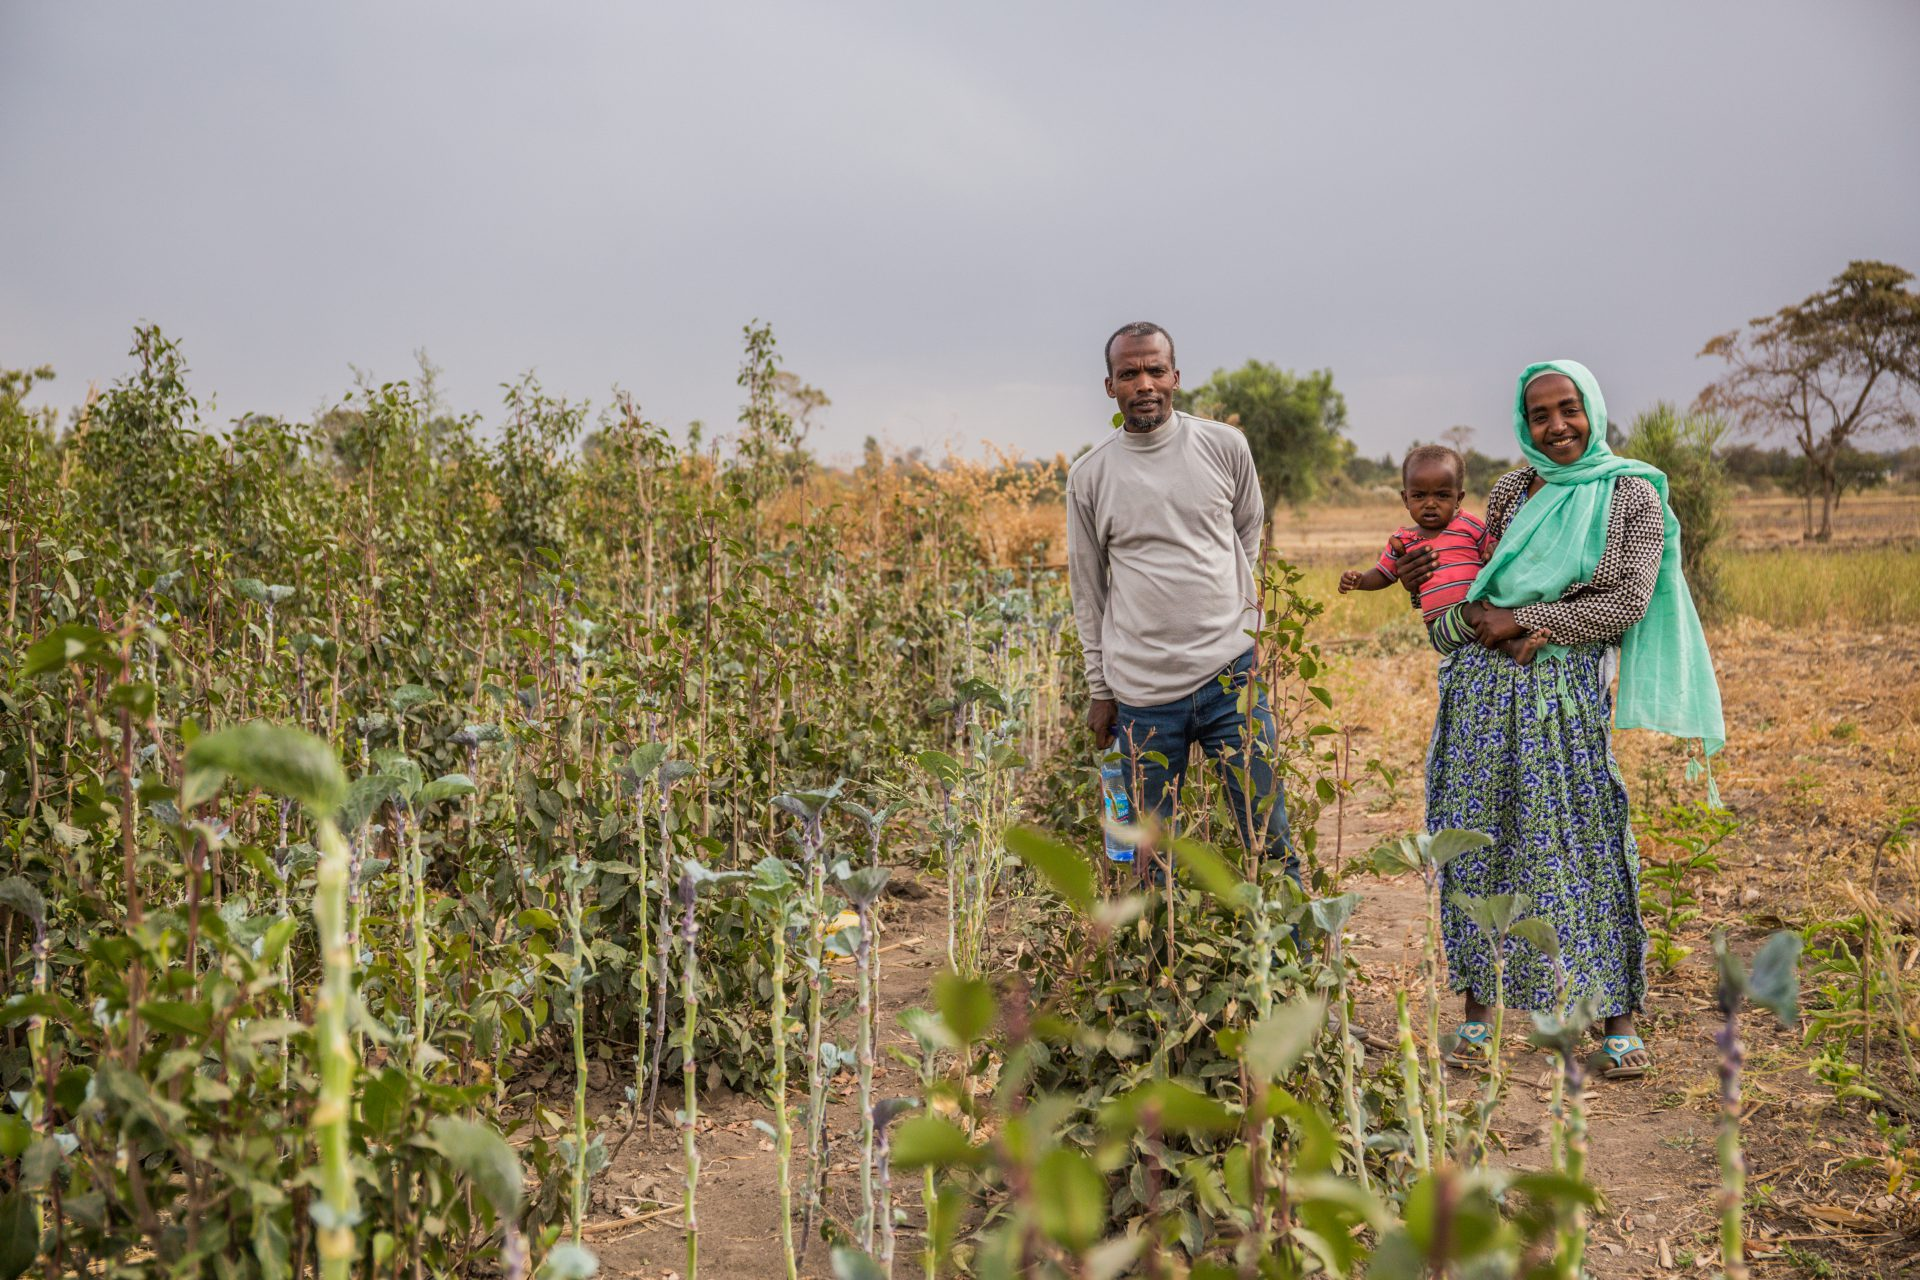 Mohammed also used to rely on the irrigation scheme, but is no longer able to use the water for his farm because so many others are using it too. ©Genaye Eshetu/ Genaye Eshetu Read more